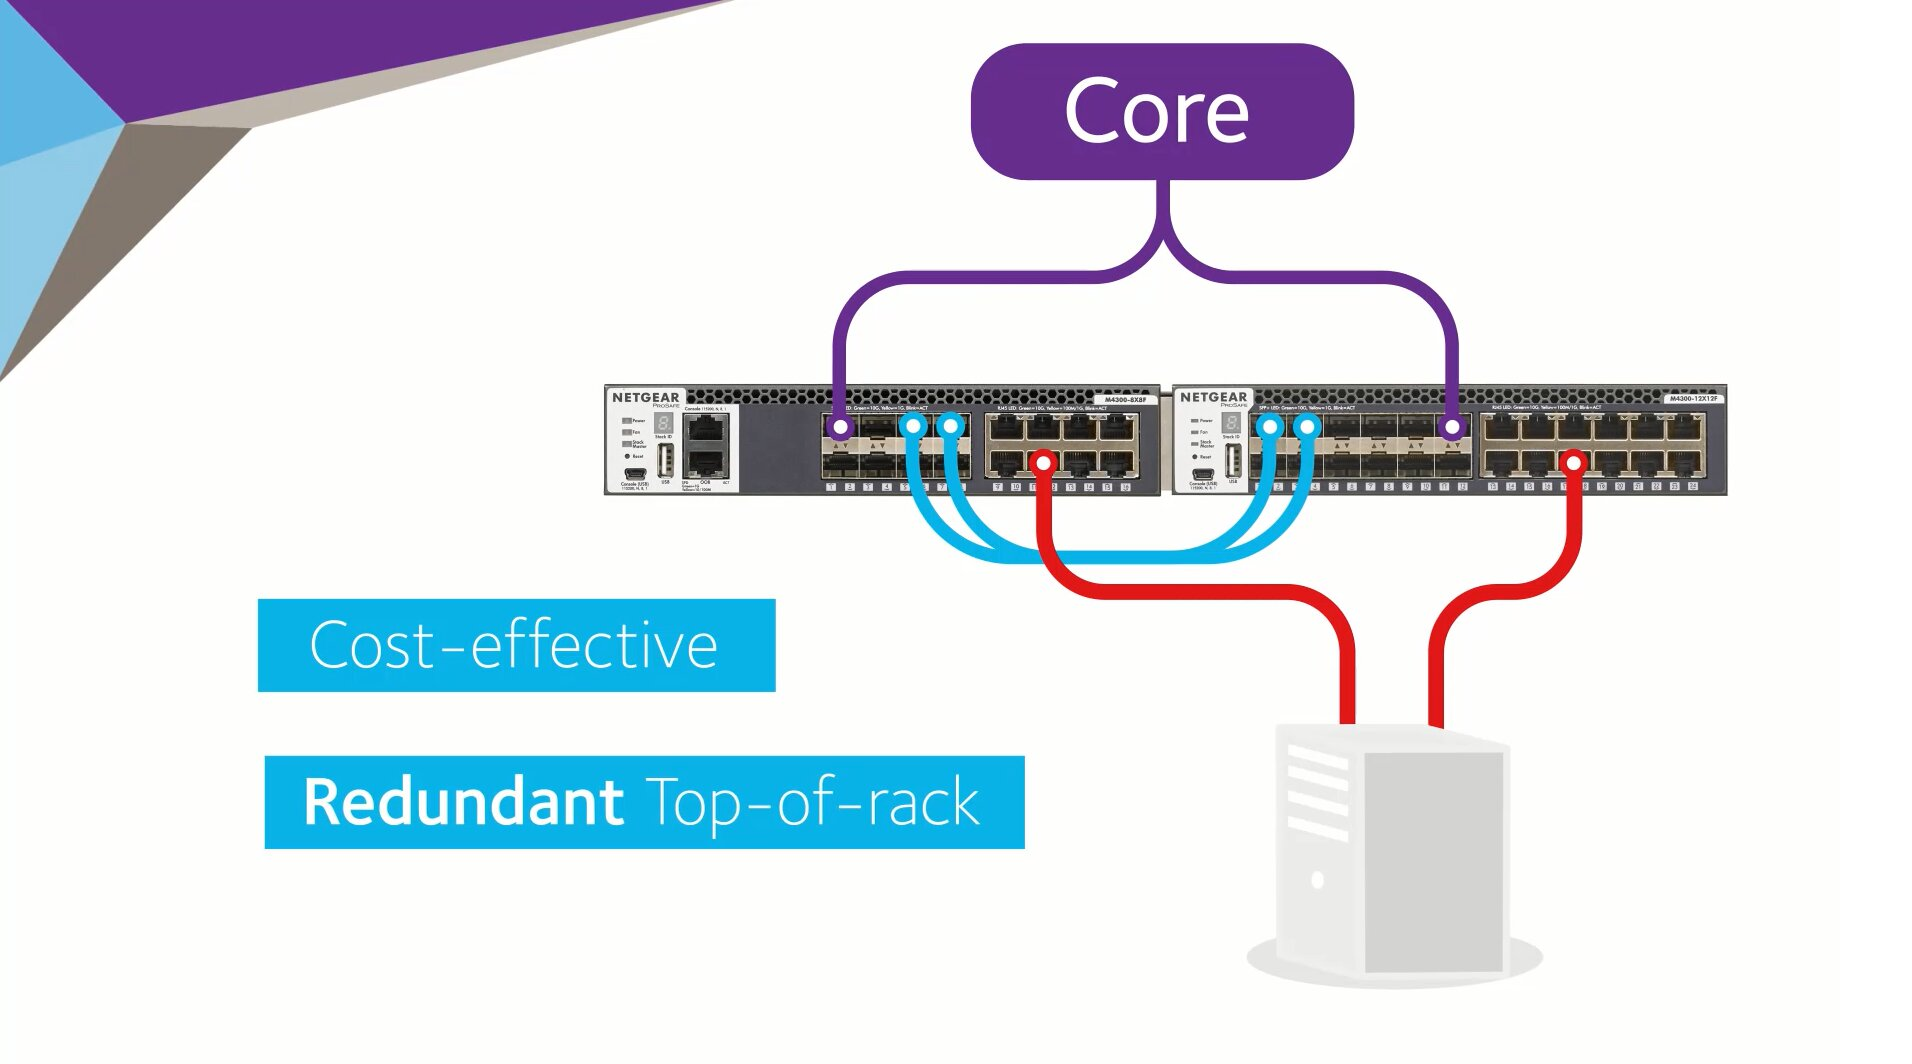 M4300 Intelligent Edge Series | Fully Managed Switches | NETGEAR